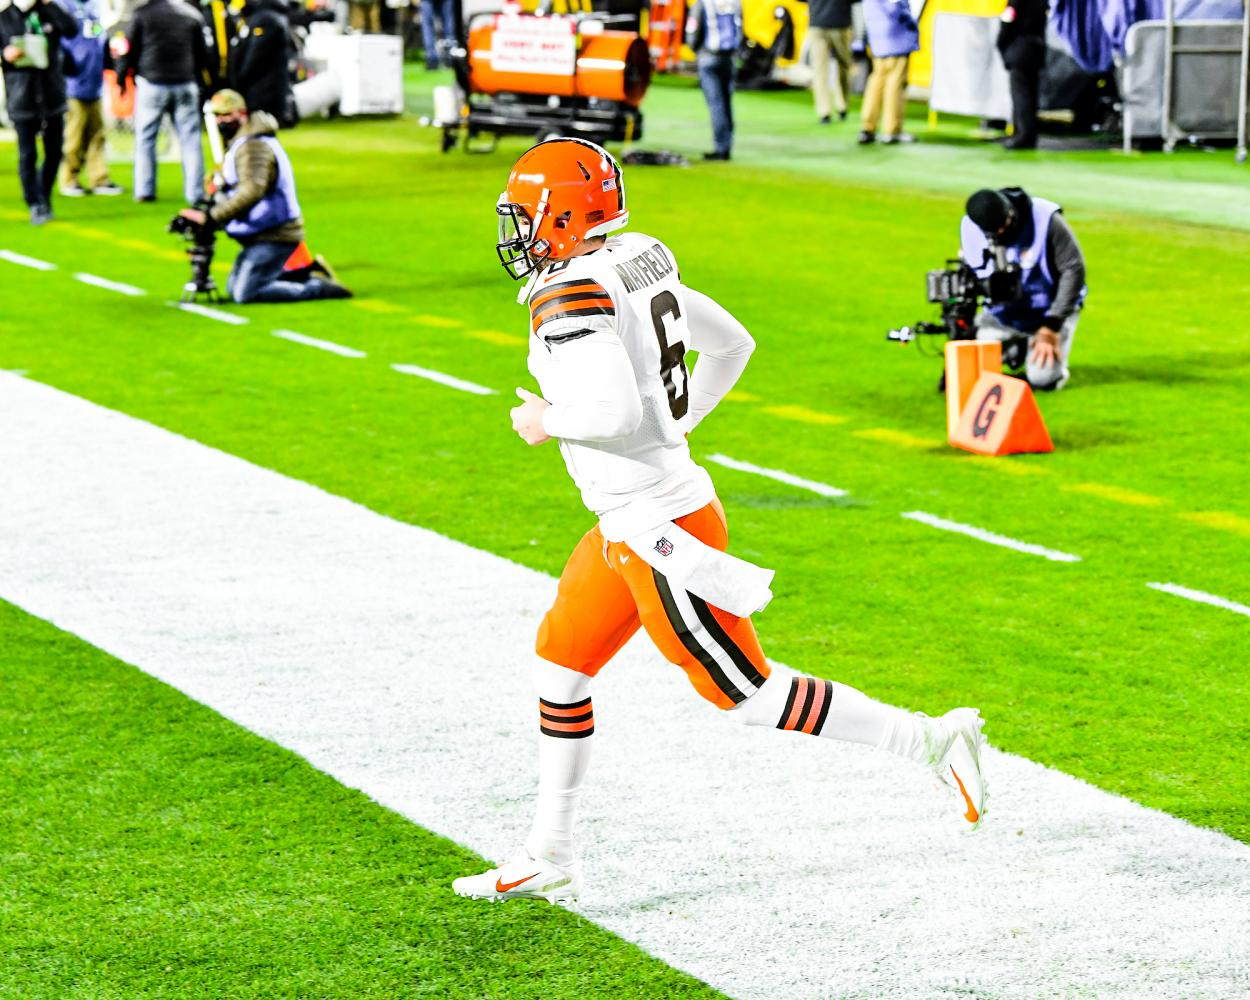 (Photo: Cleveland Browns)